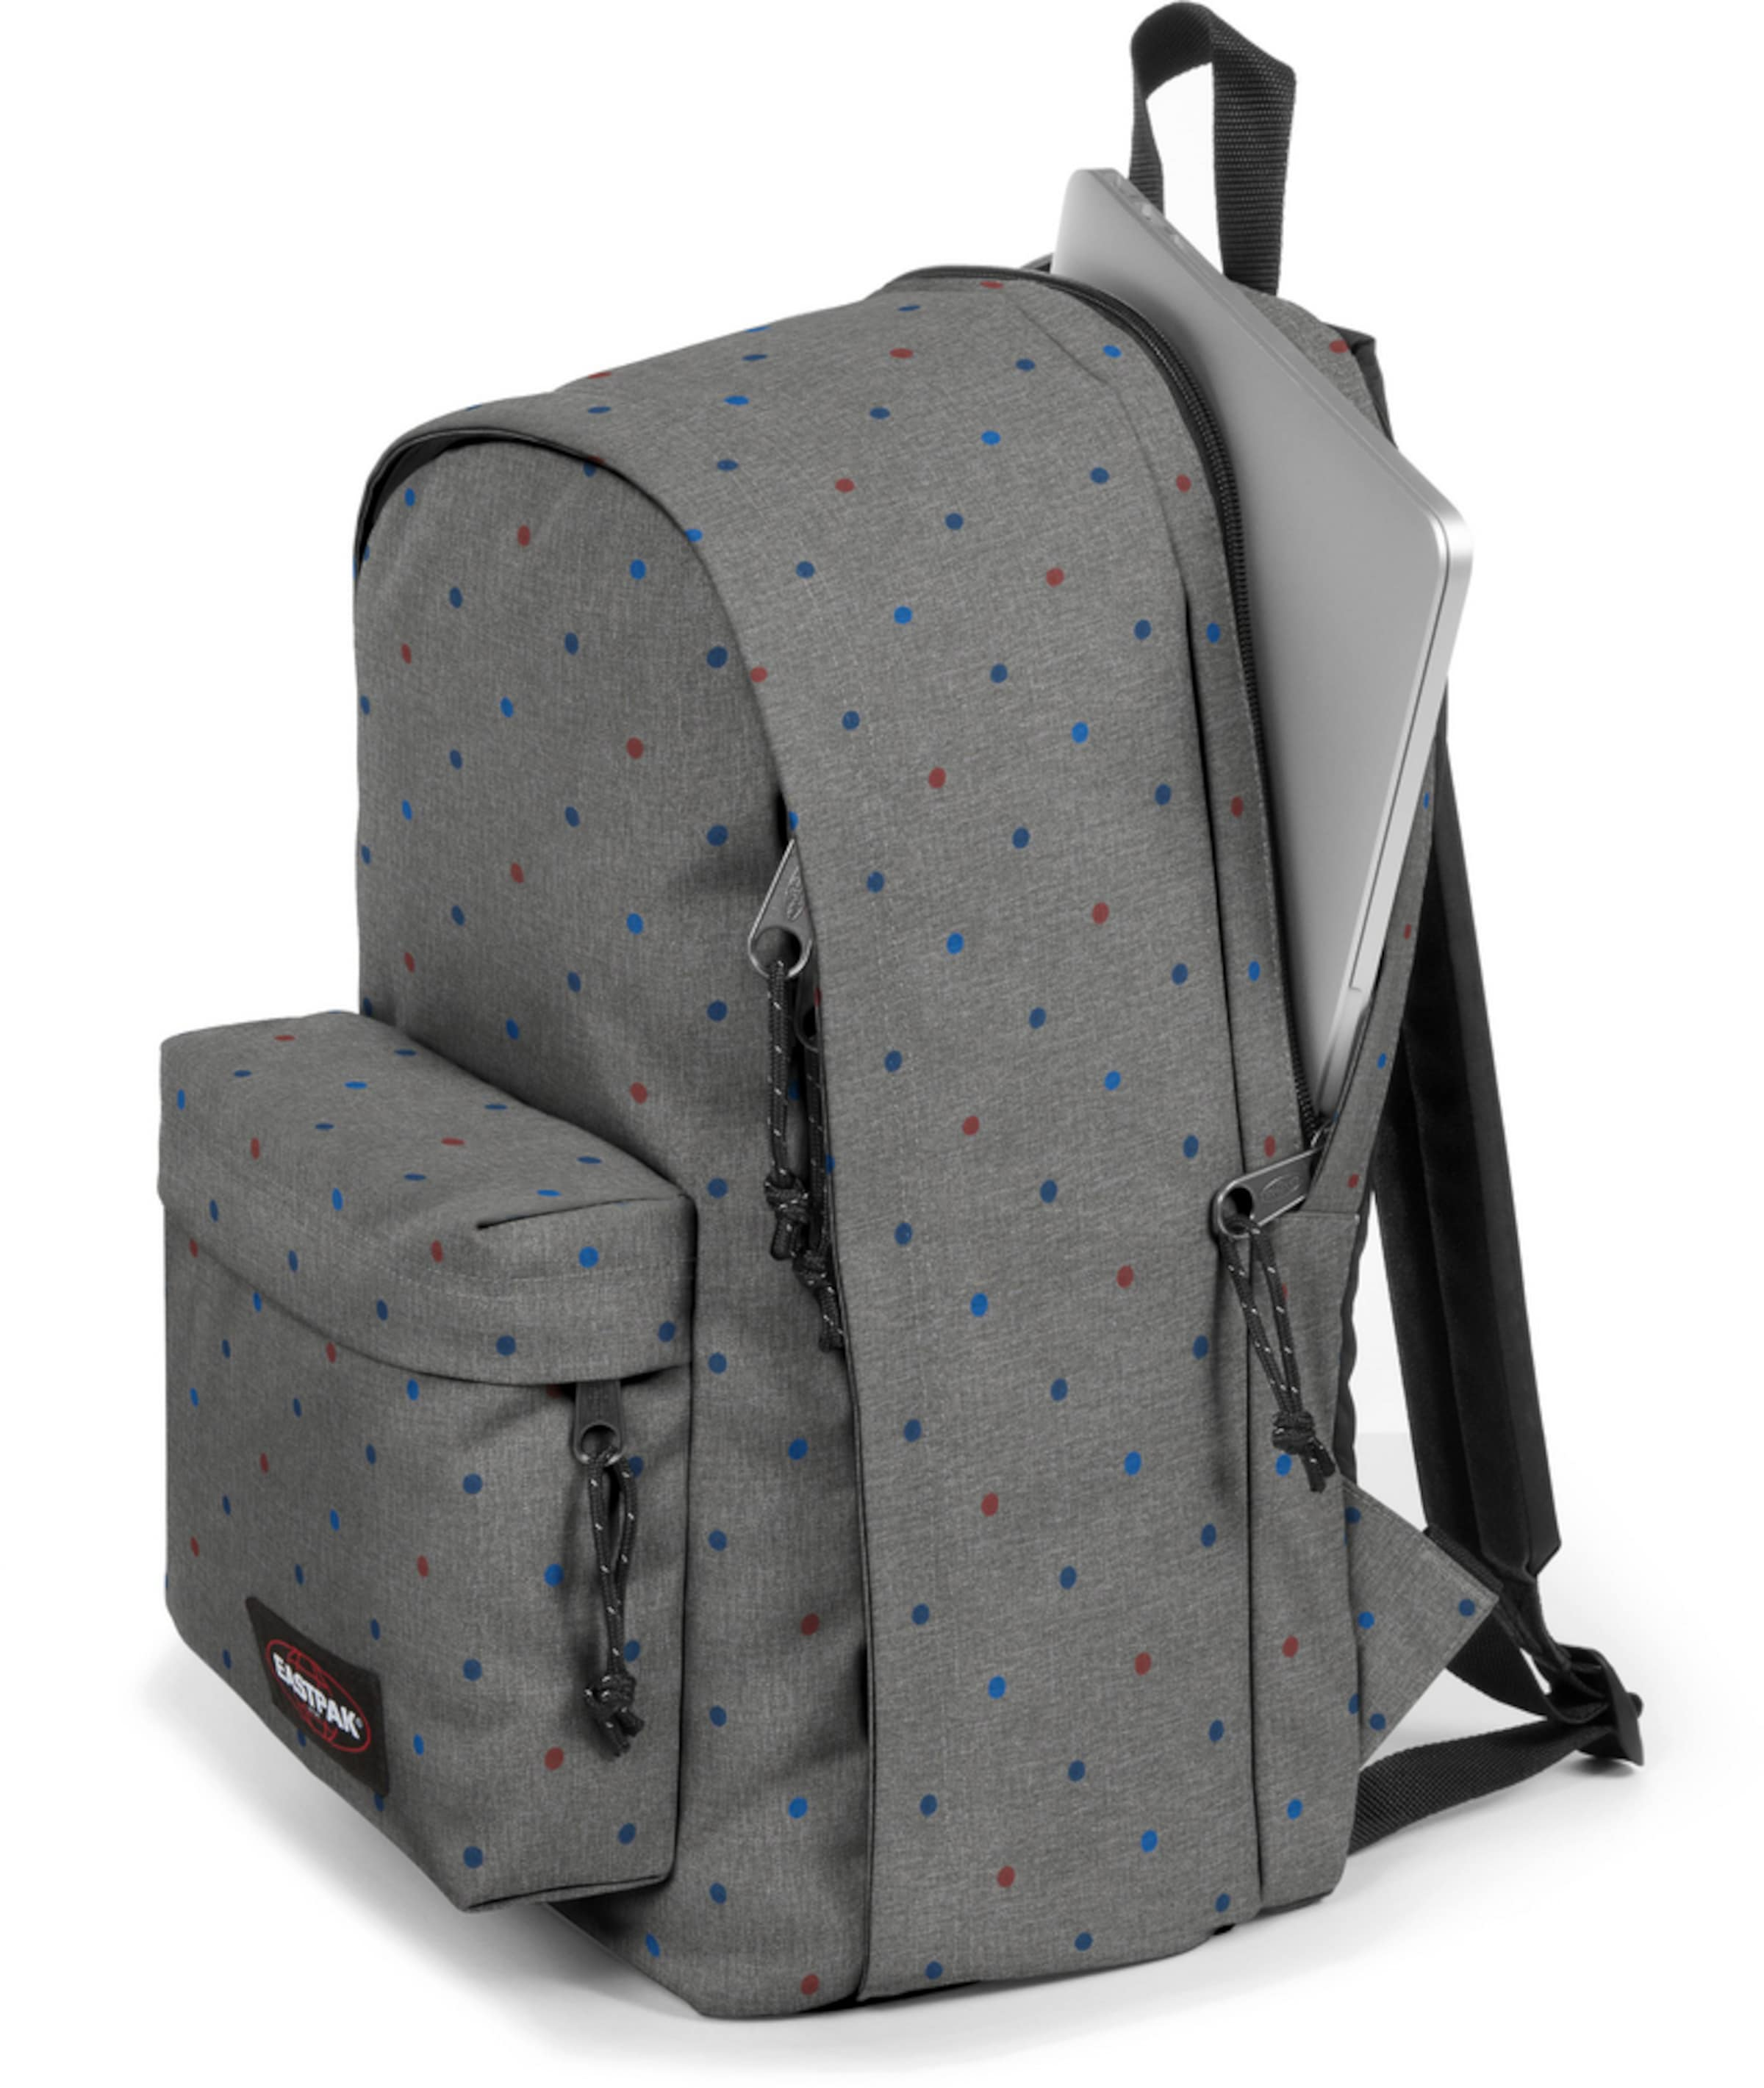 mit EASTPAK Rucksack dots' WORK Laptopfach 'BACK trio EASTPAK TO Rucksack tBBTqxS